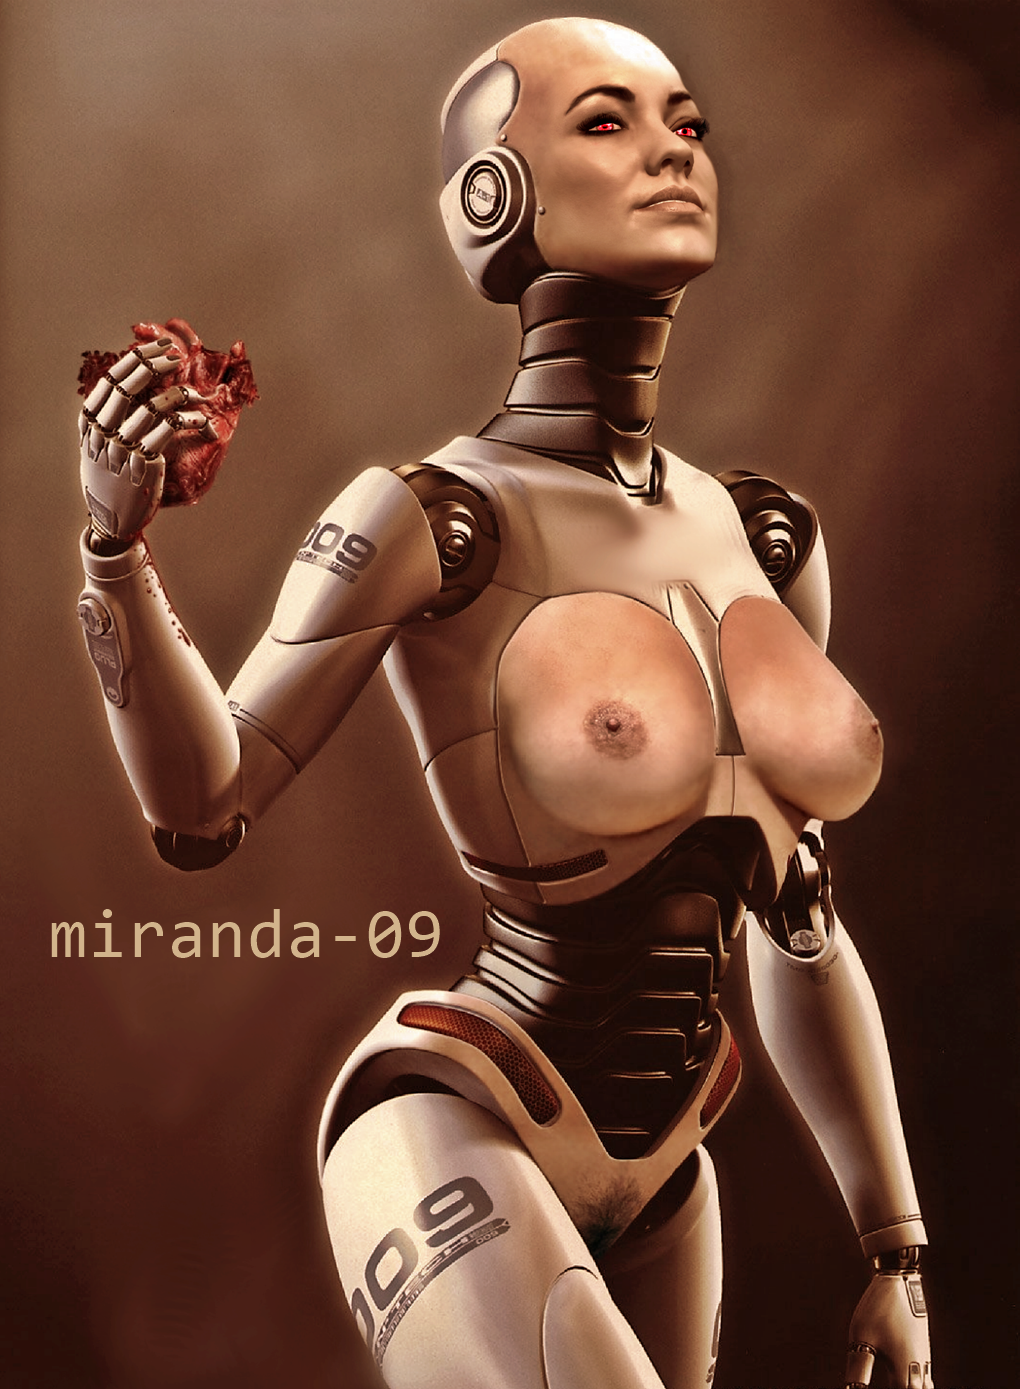 1girl 3d a.i breasts cyborg fake female_solo games mass_effect mass_effect_2 mass_effect_3 miranda_lawson nipples nude posing pussy pussy_hair red_eyes render robot solo_female video_games xnalara xps